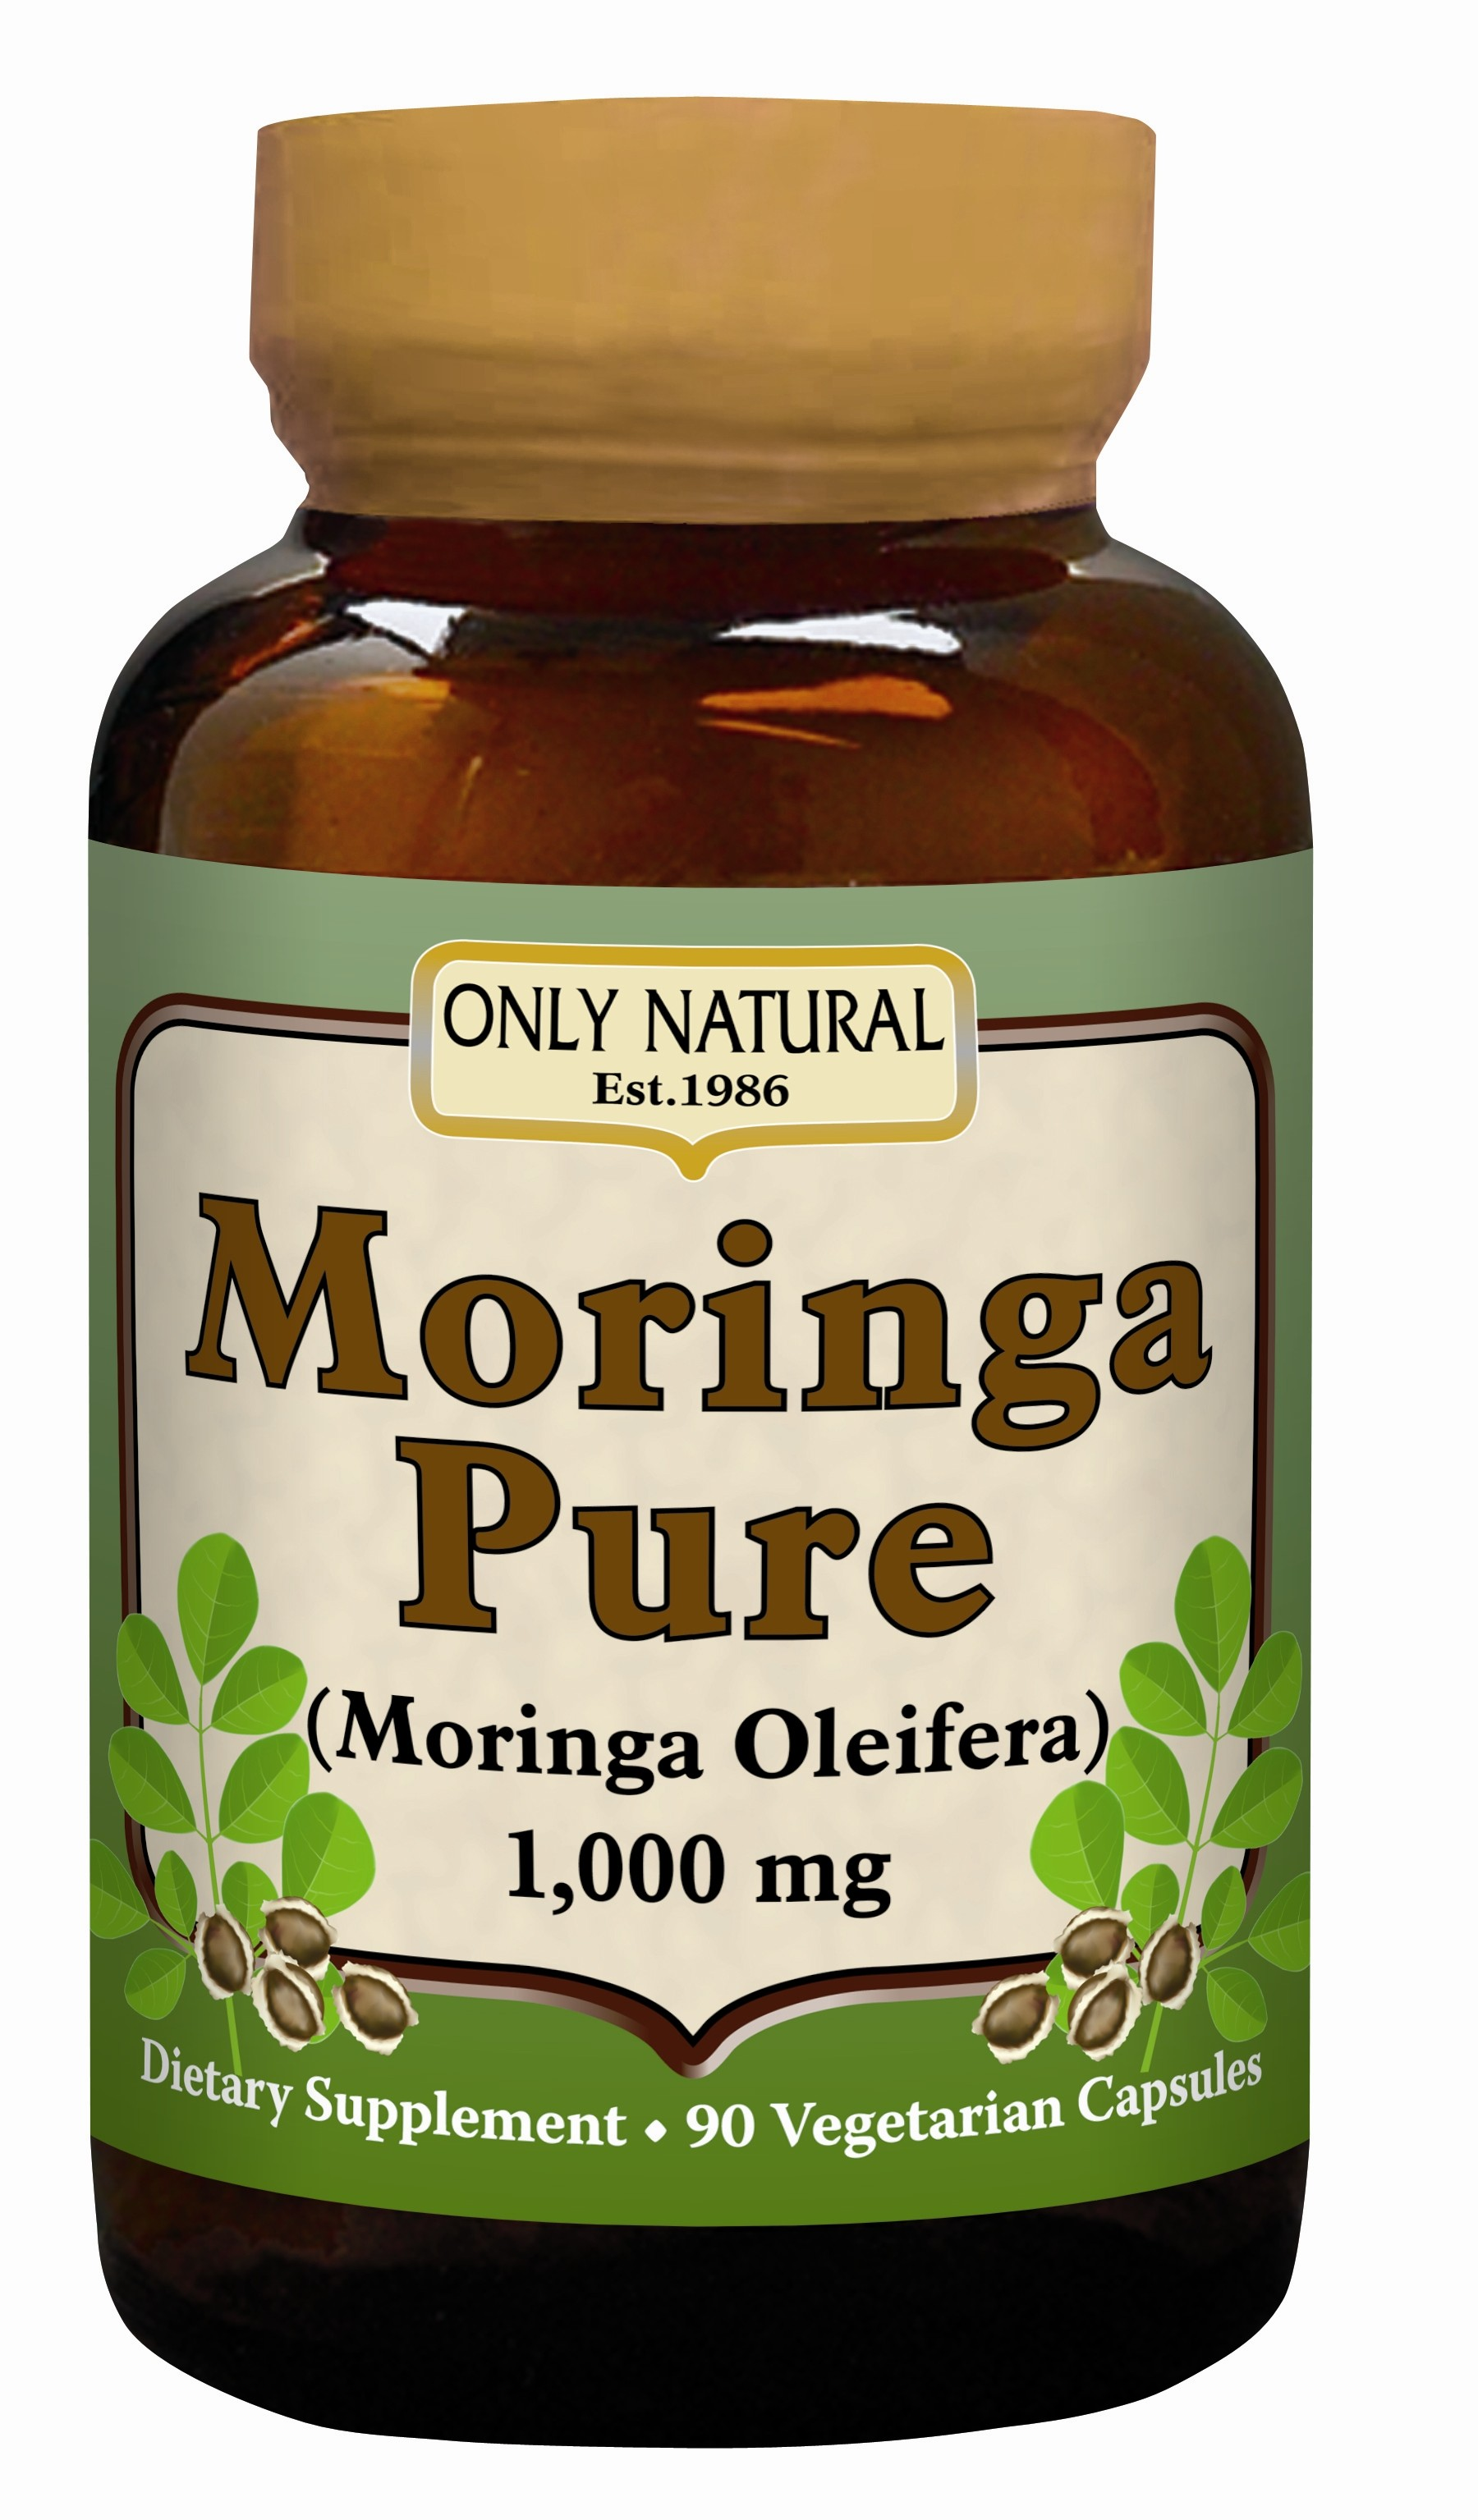 moringa_pure_bottle__1_1